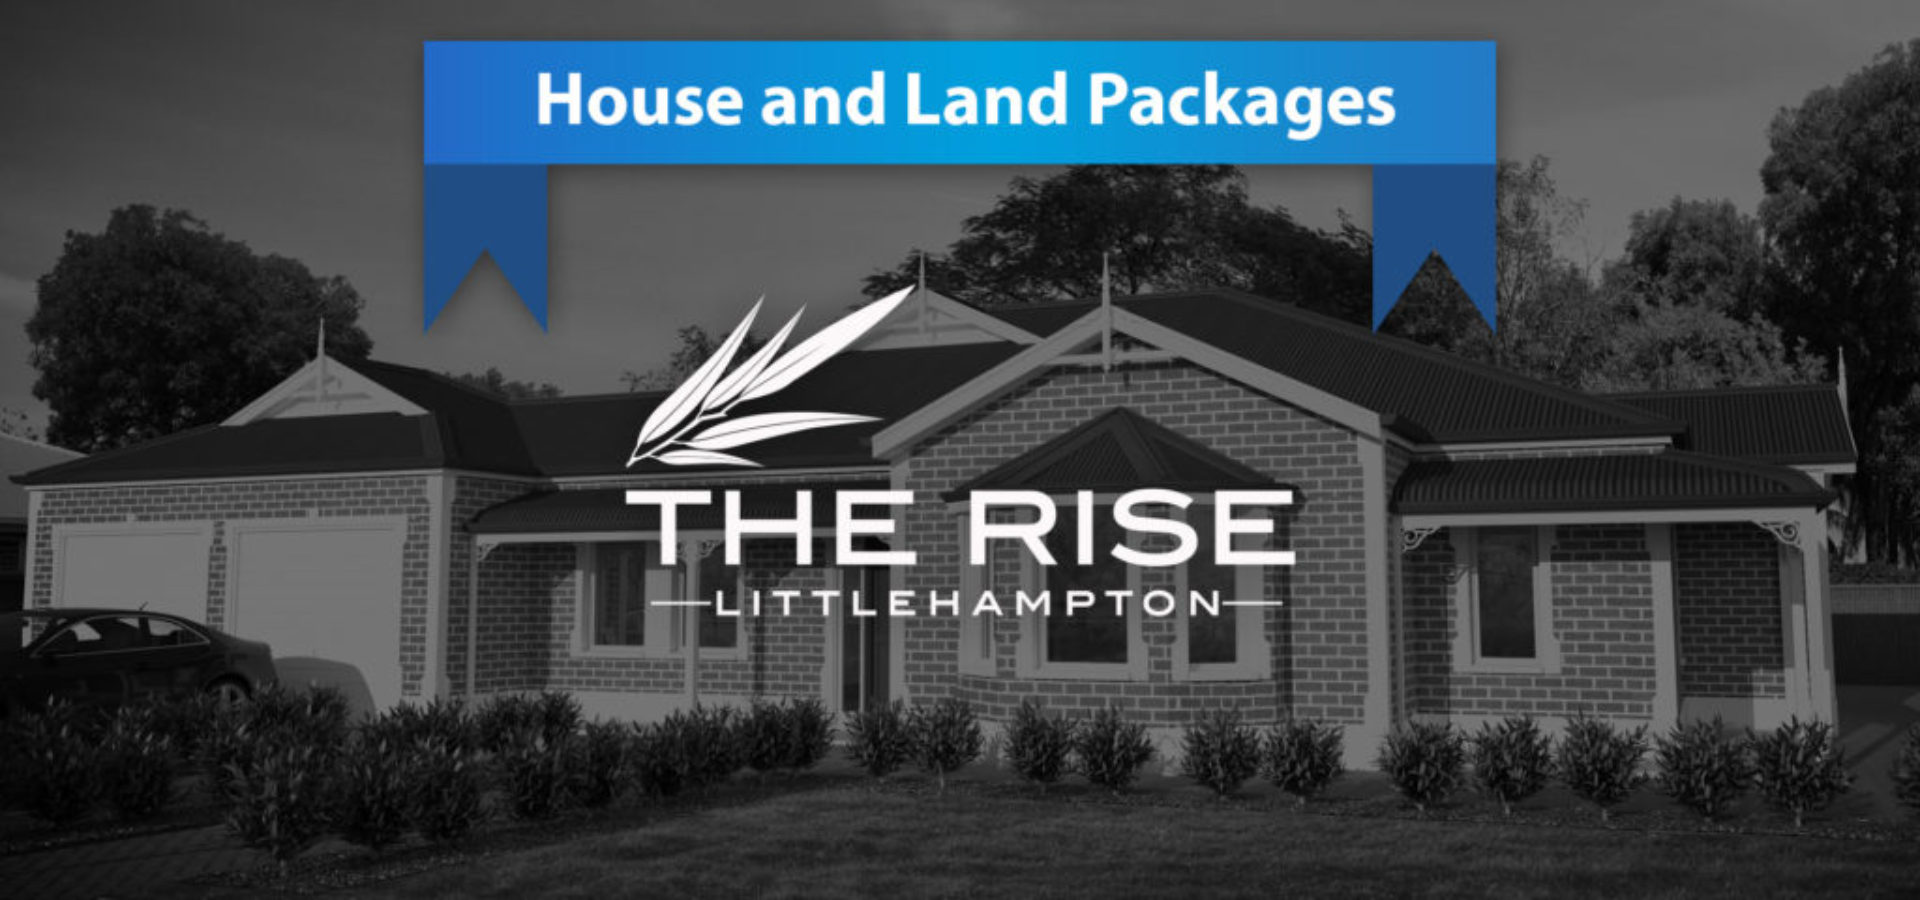 the rise littlehampton house land packages slider with logo